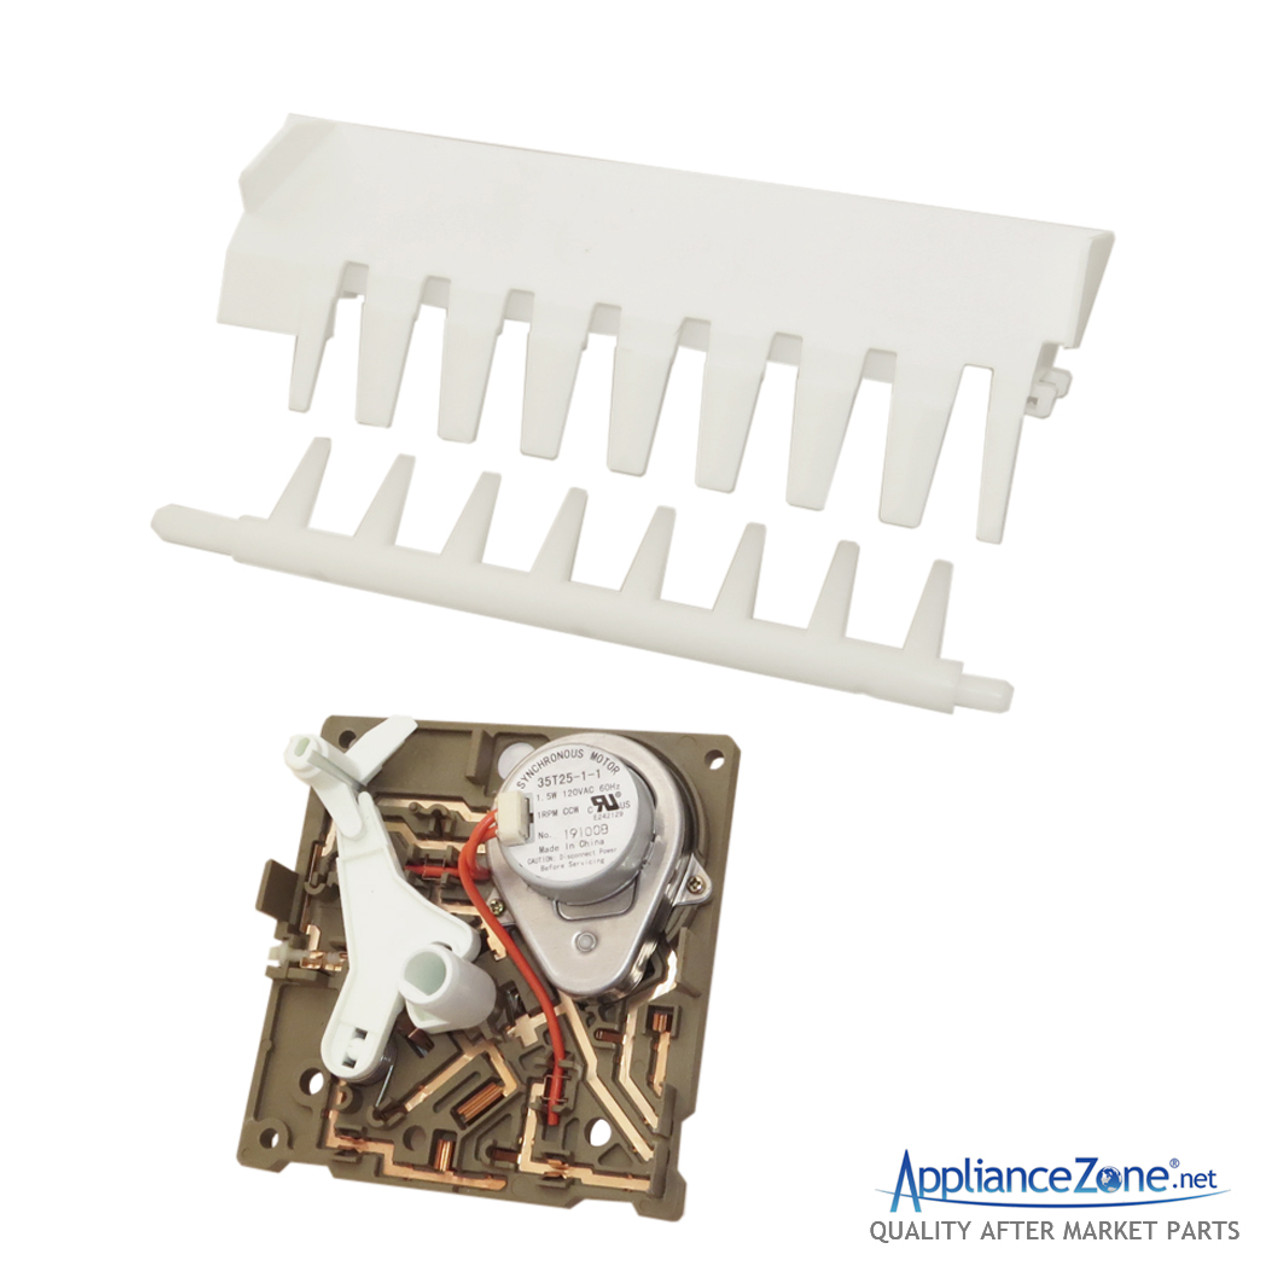 NEW Whirlpool 8201515 ICEMAKER MOTOR CONTROL MODULE KIT FACTORY AUTHORIZED